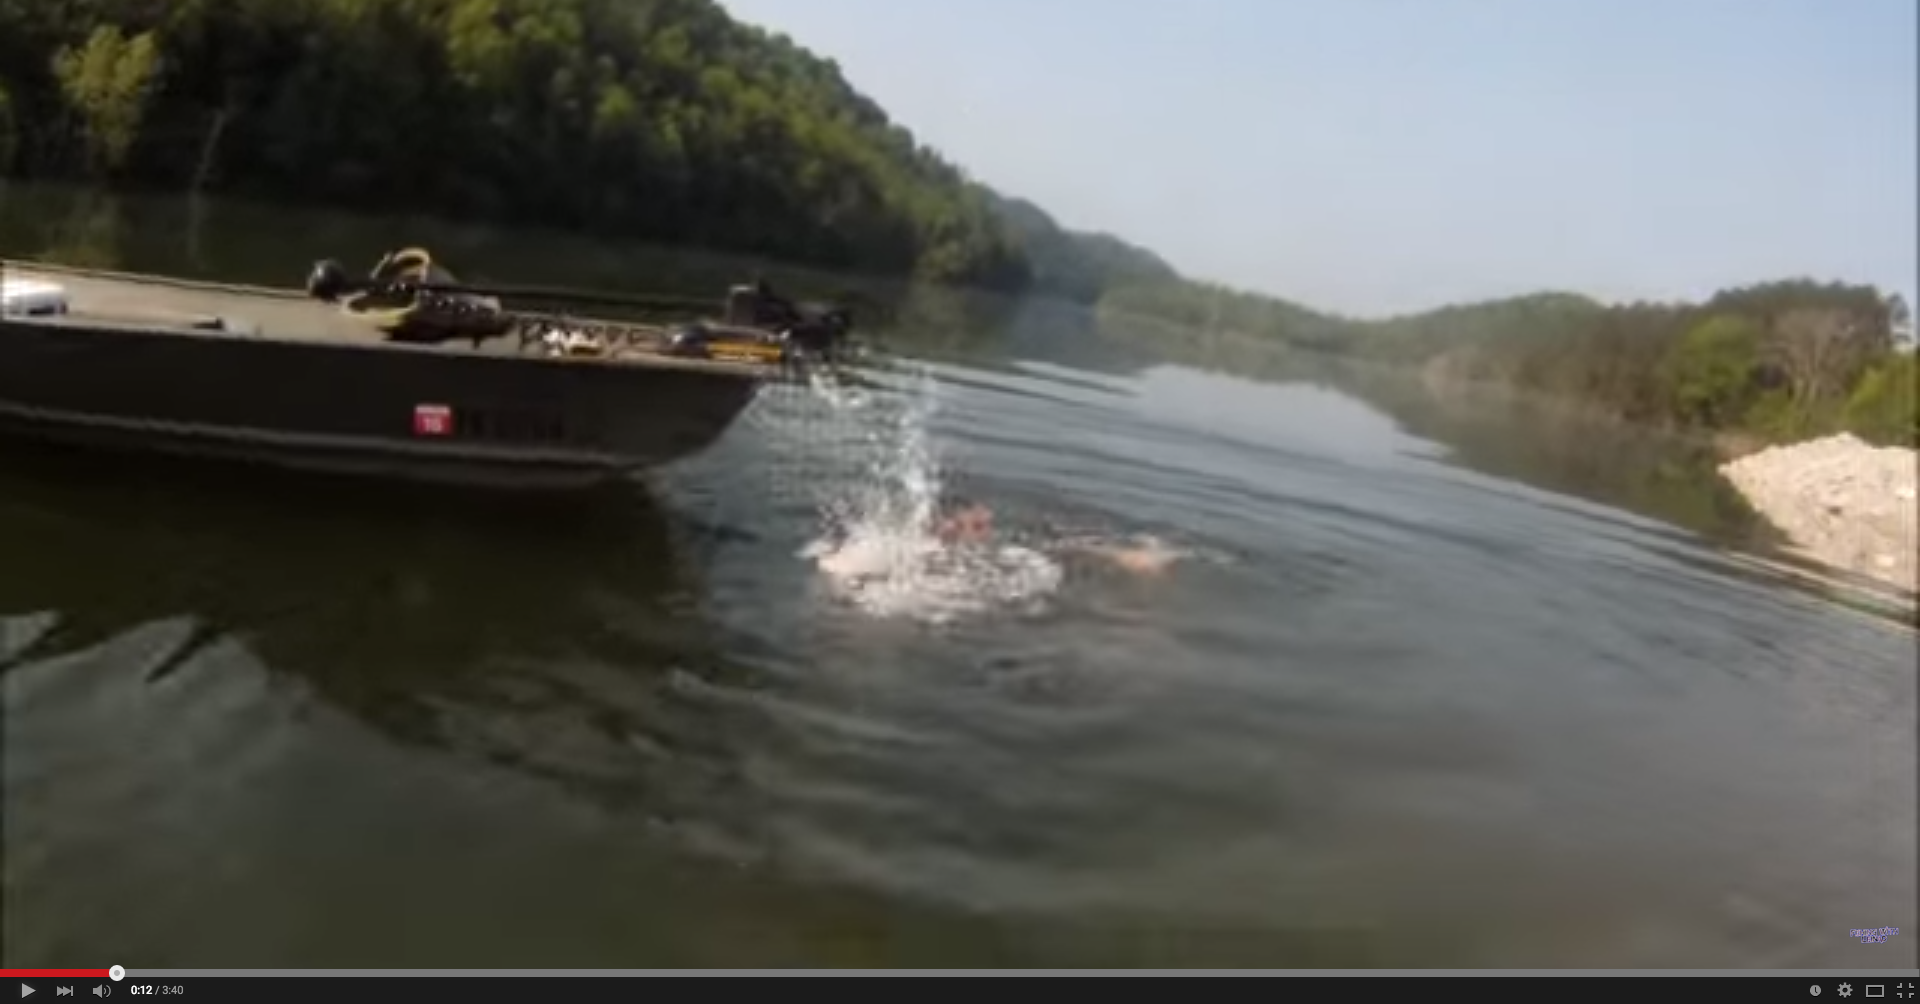 Tennessee Angler Rescues Drowning Man